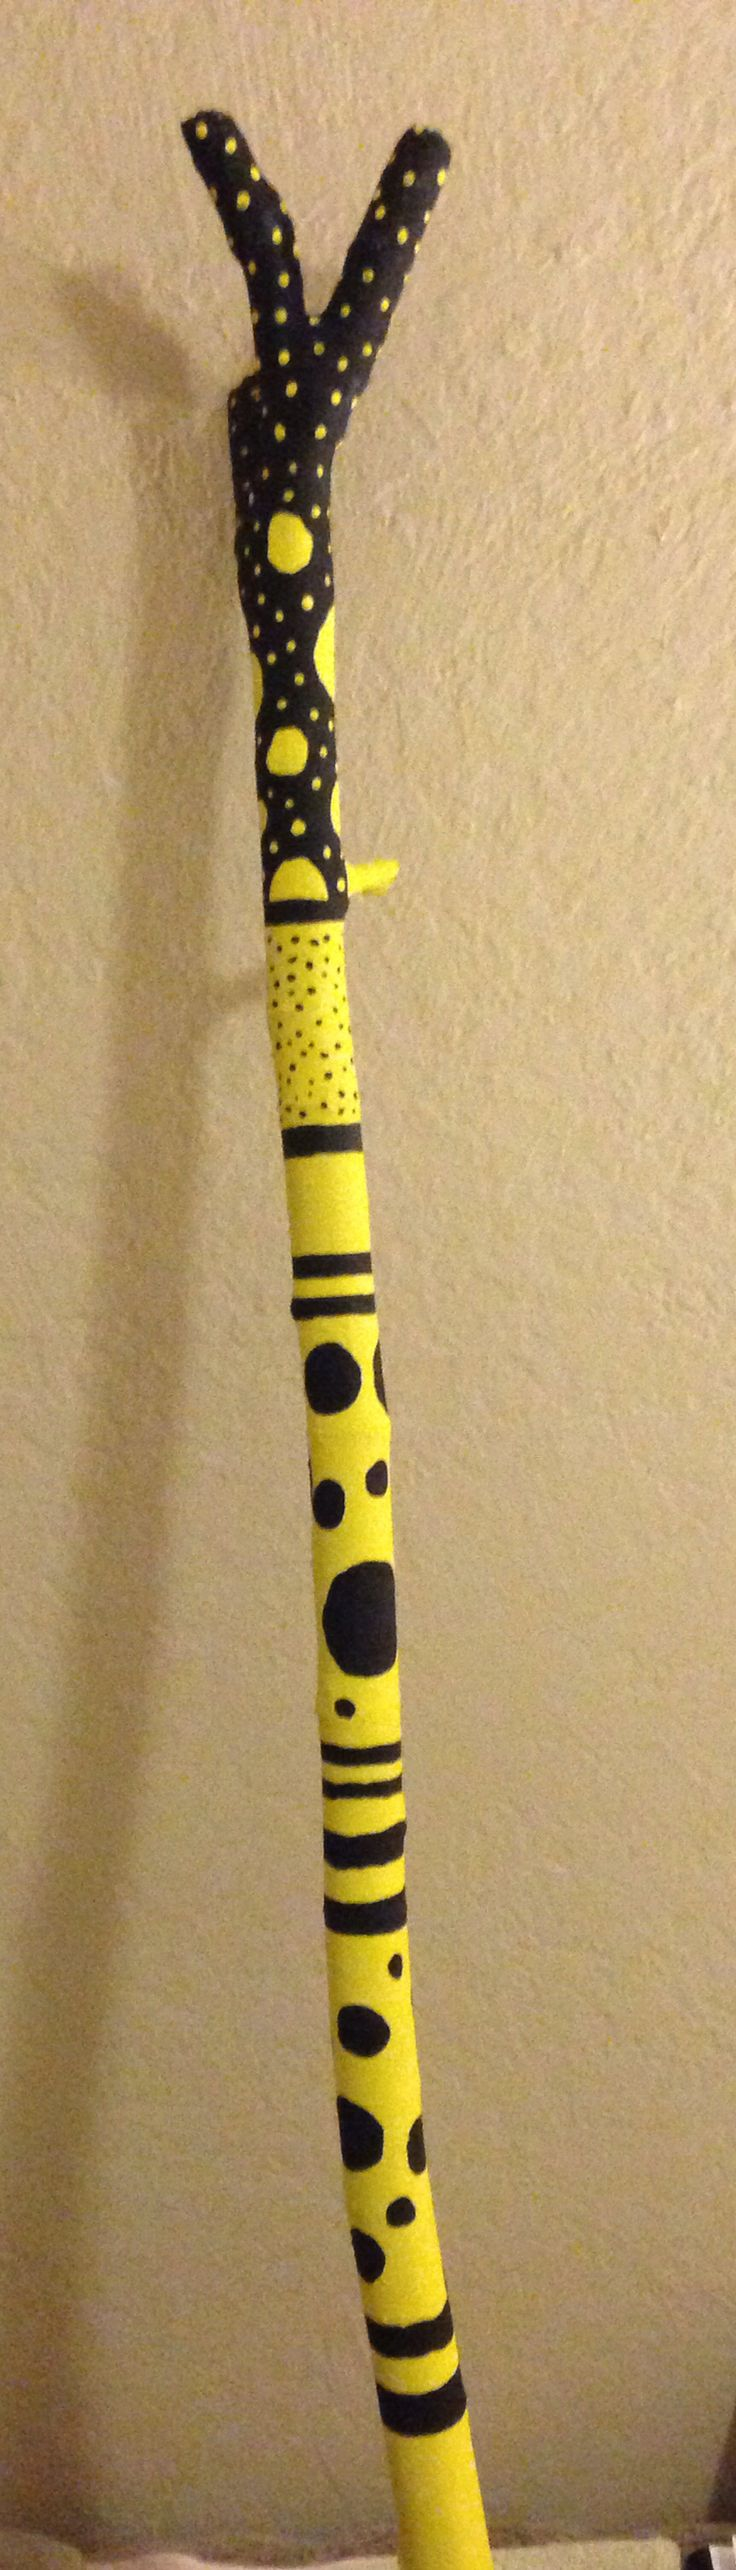 Painted stick # 2